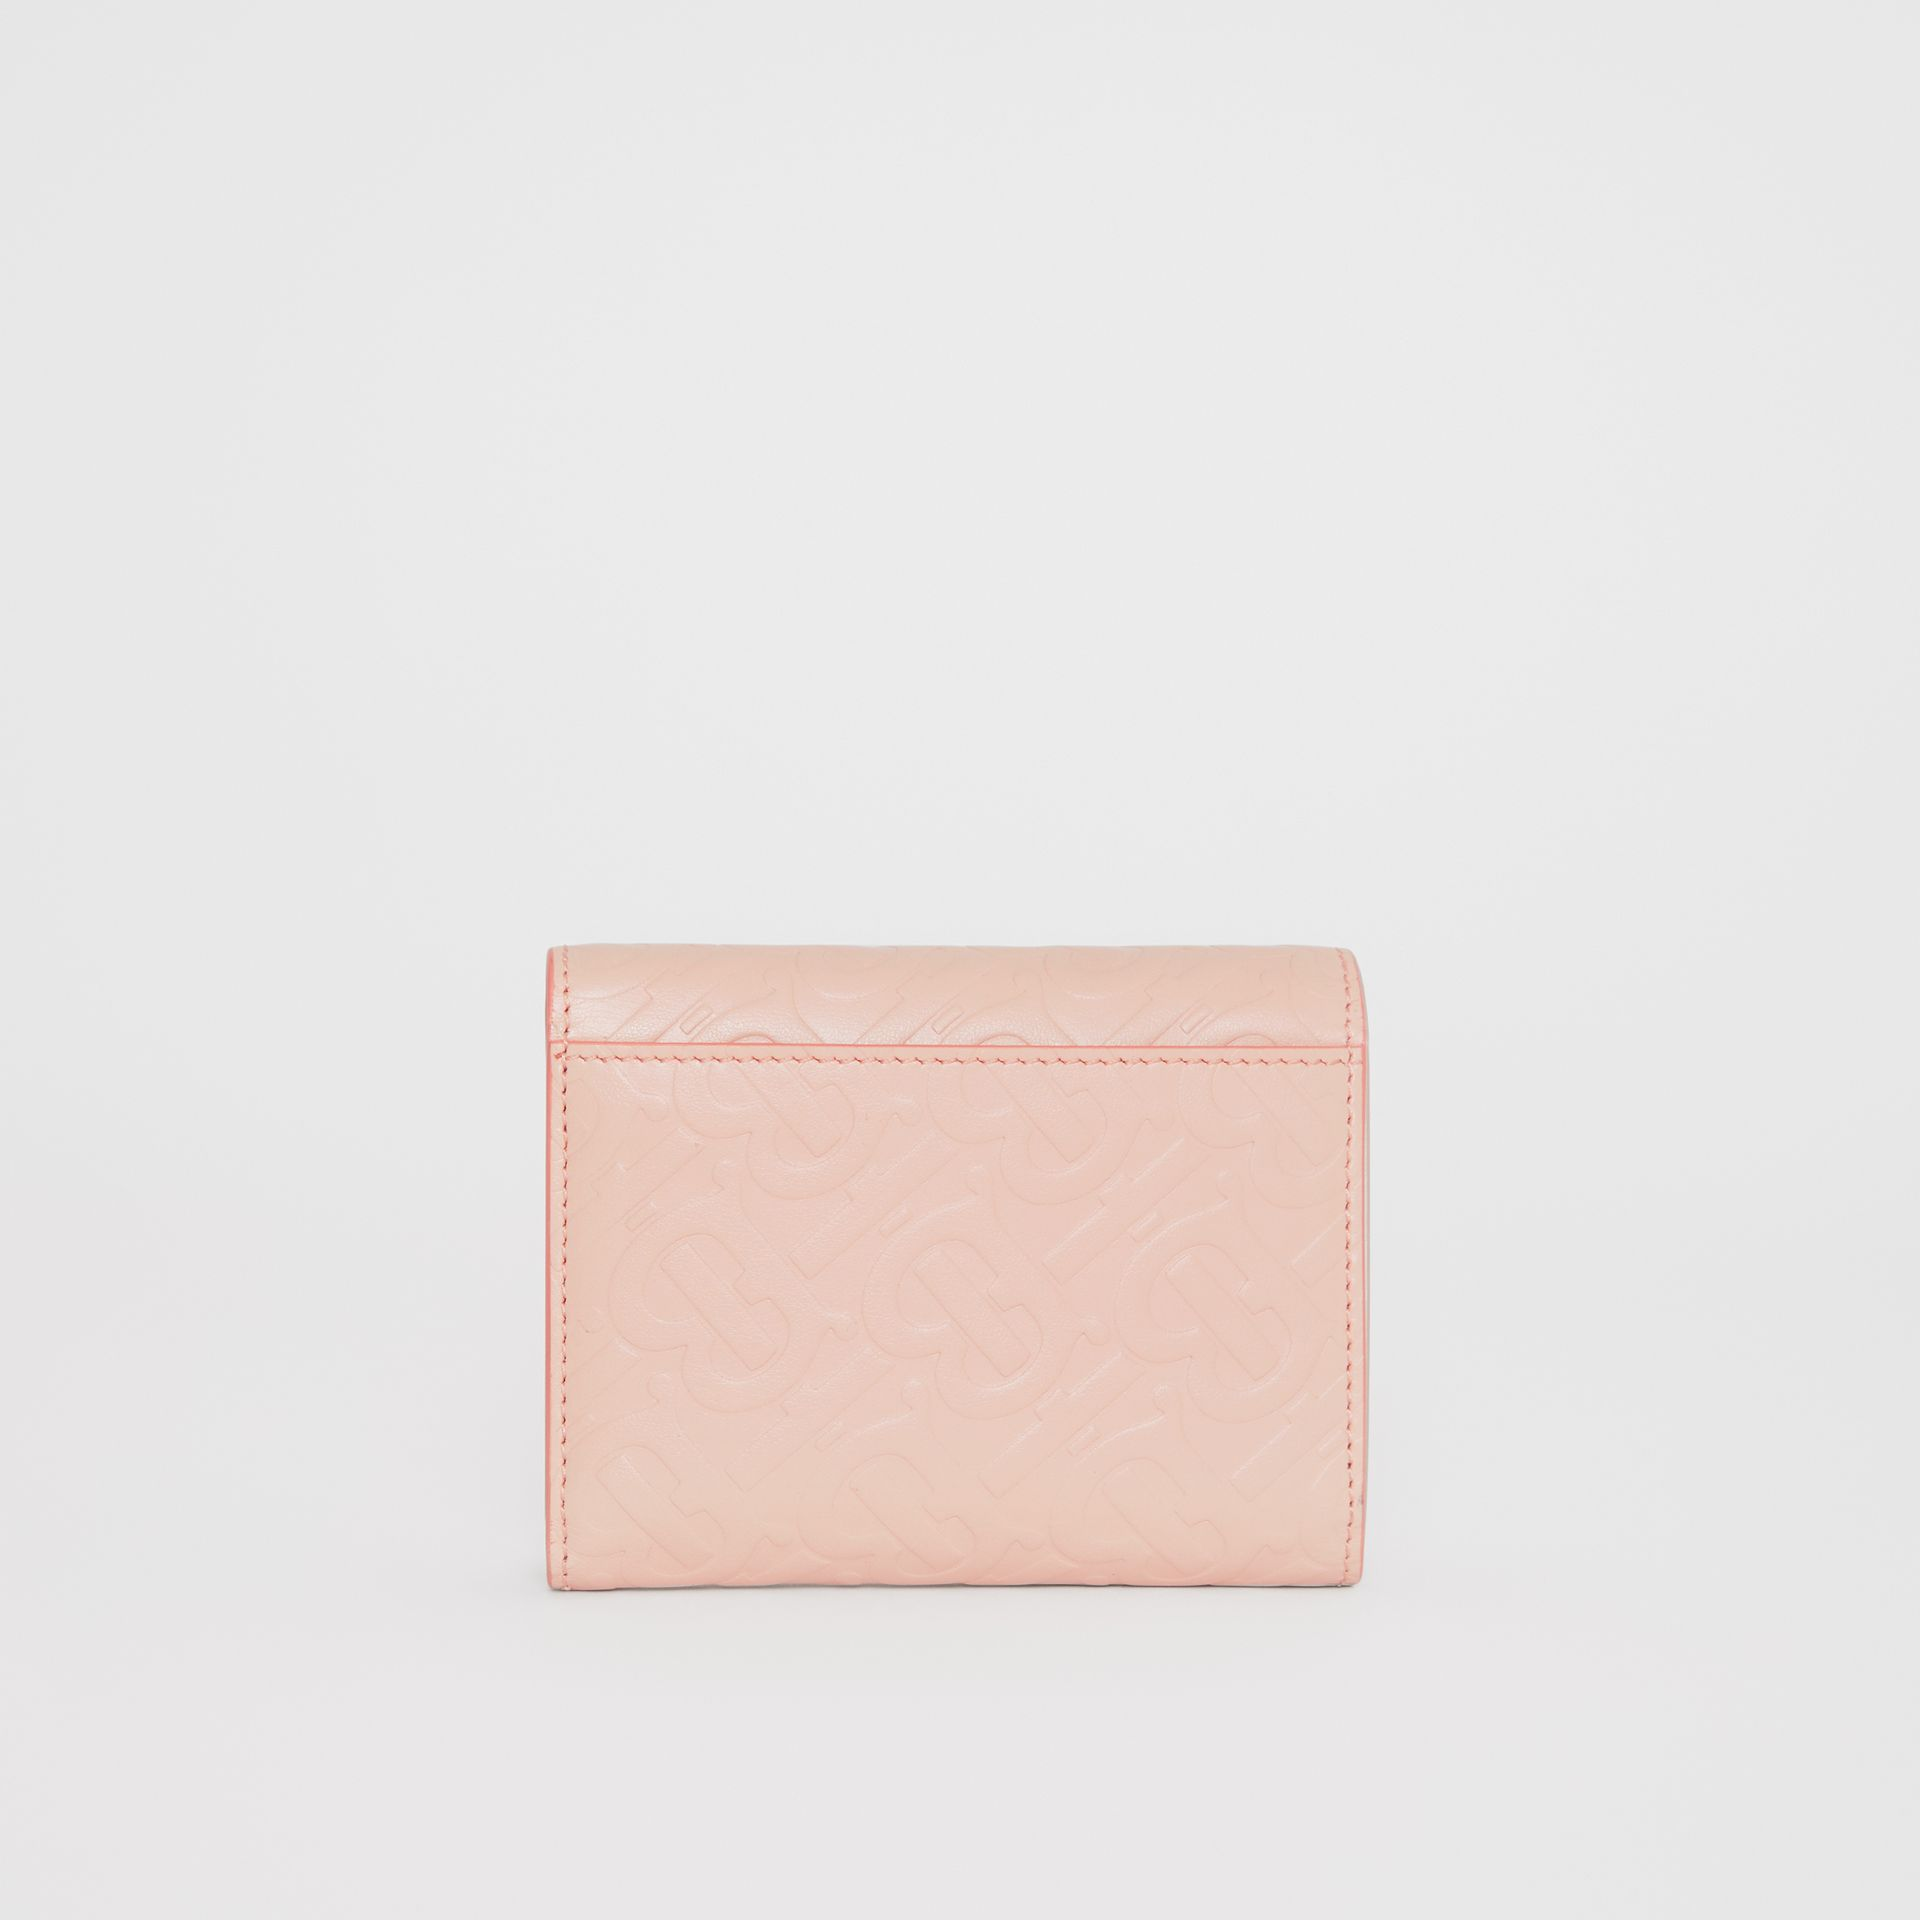 Small Monogram Leather Folding Wallet in Rose Beige - Women | Burberry - gallery image 4